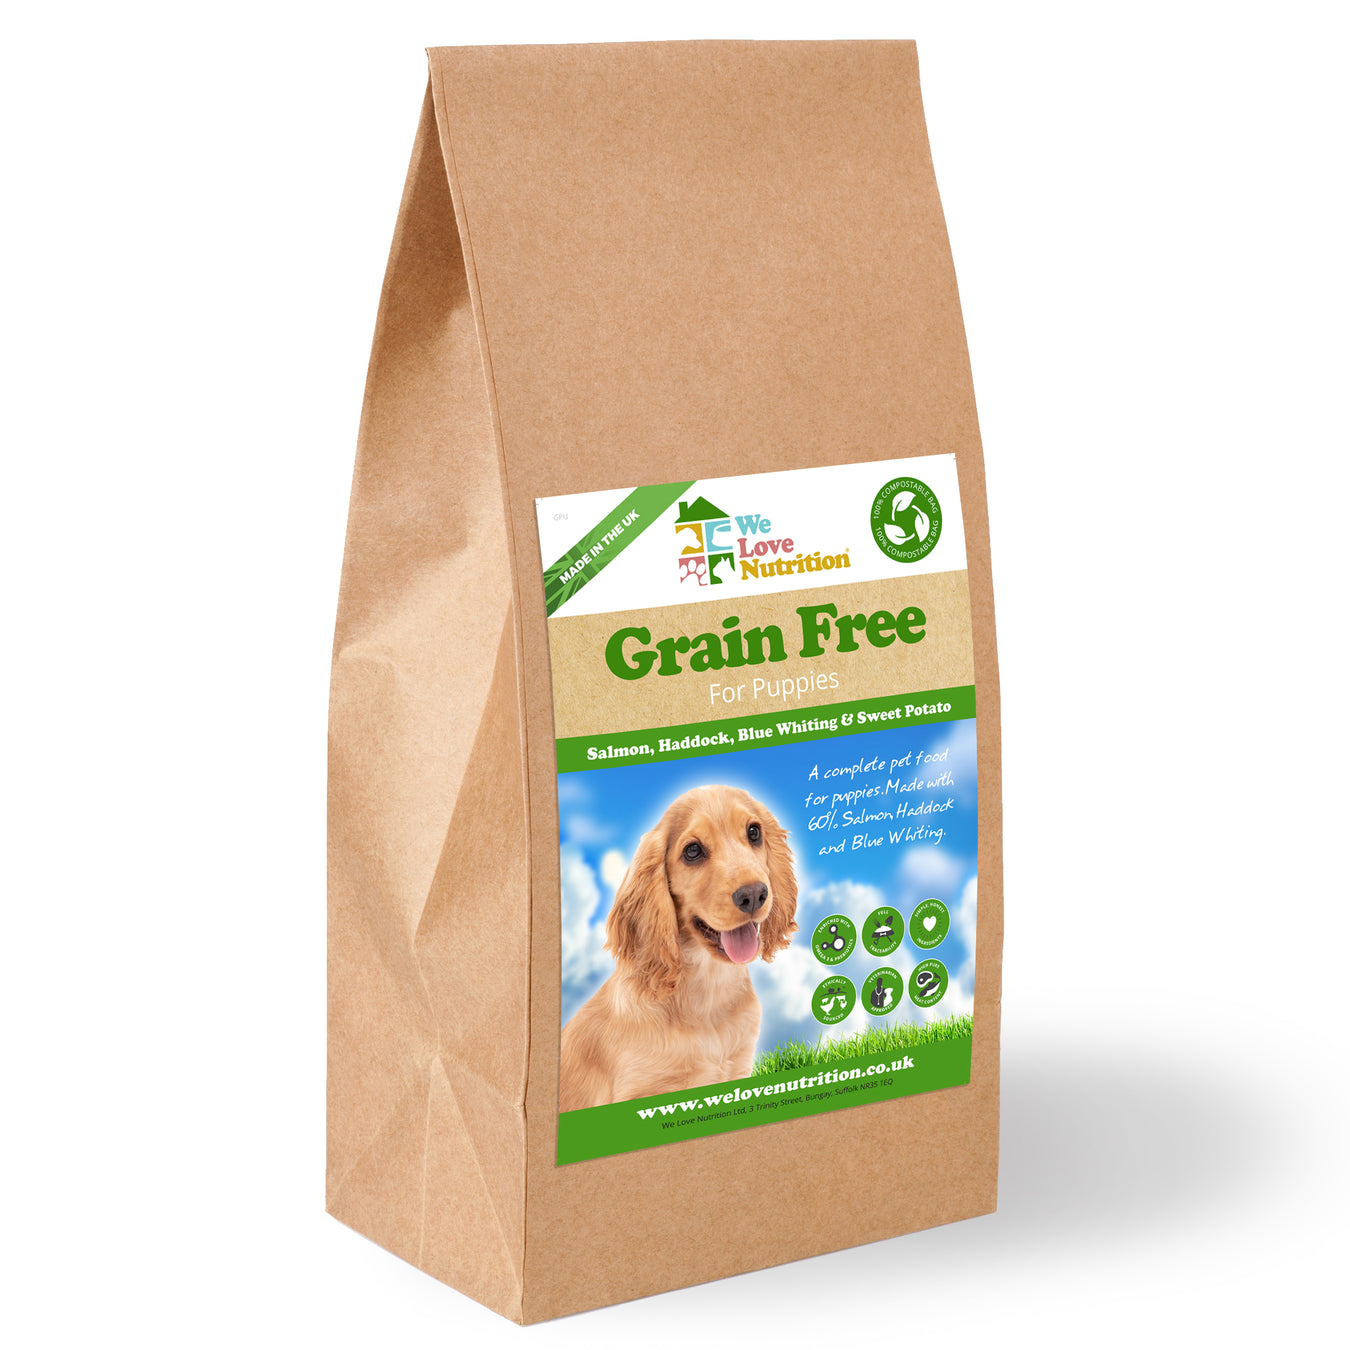 Complete Dog Food and Treats